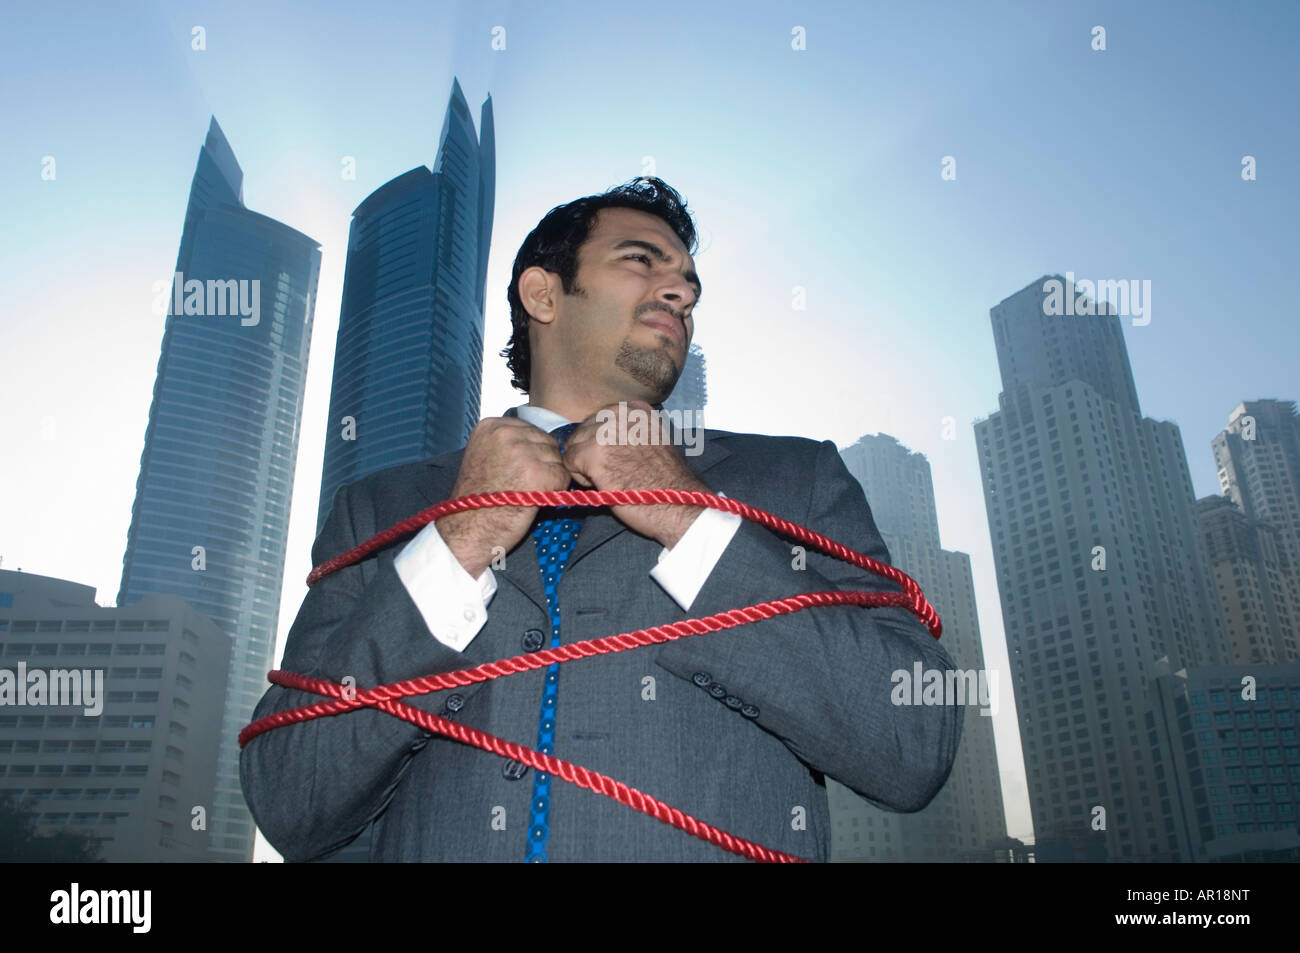 Businessman tied with rope, towers seen through the mist in the background Stock Photo